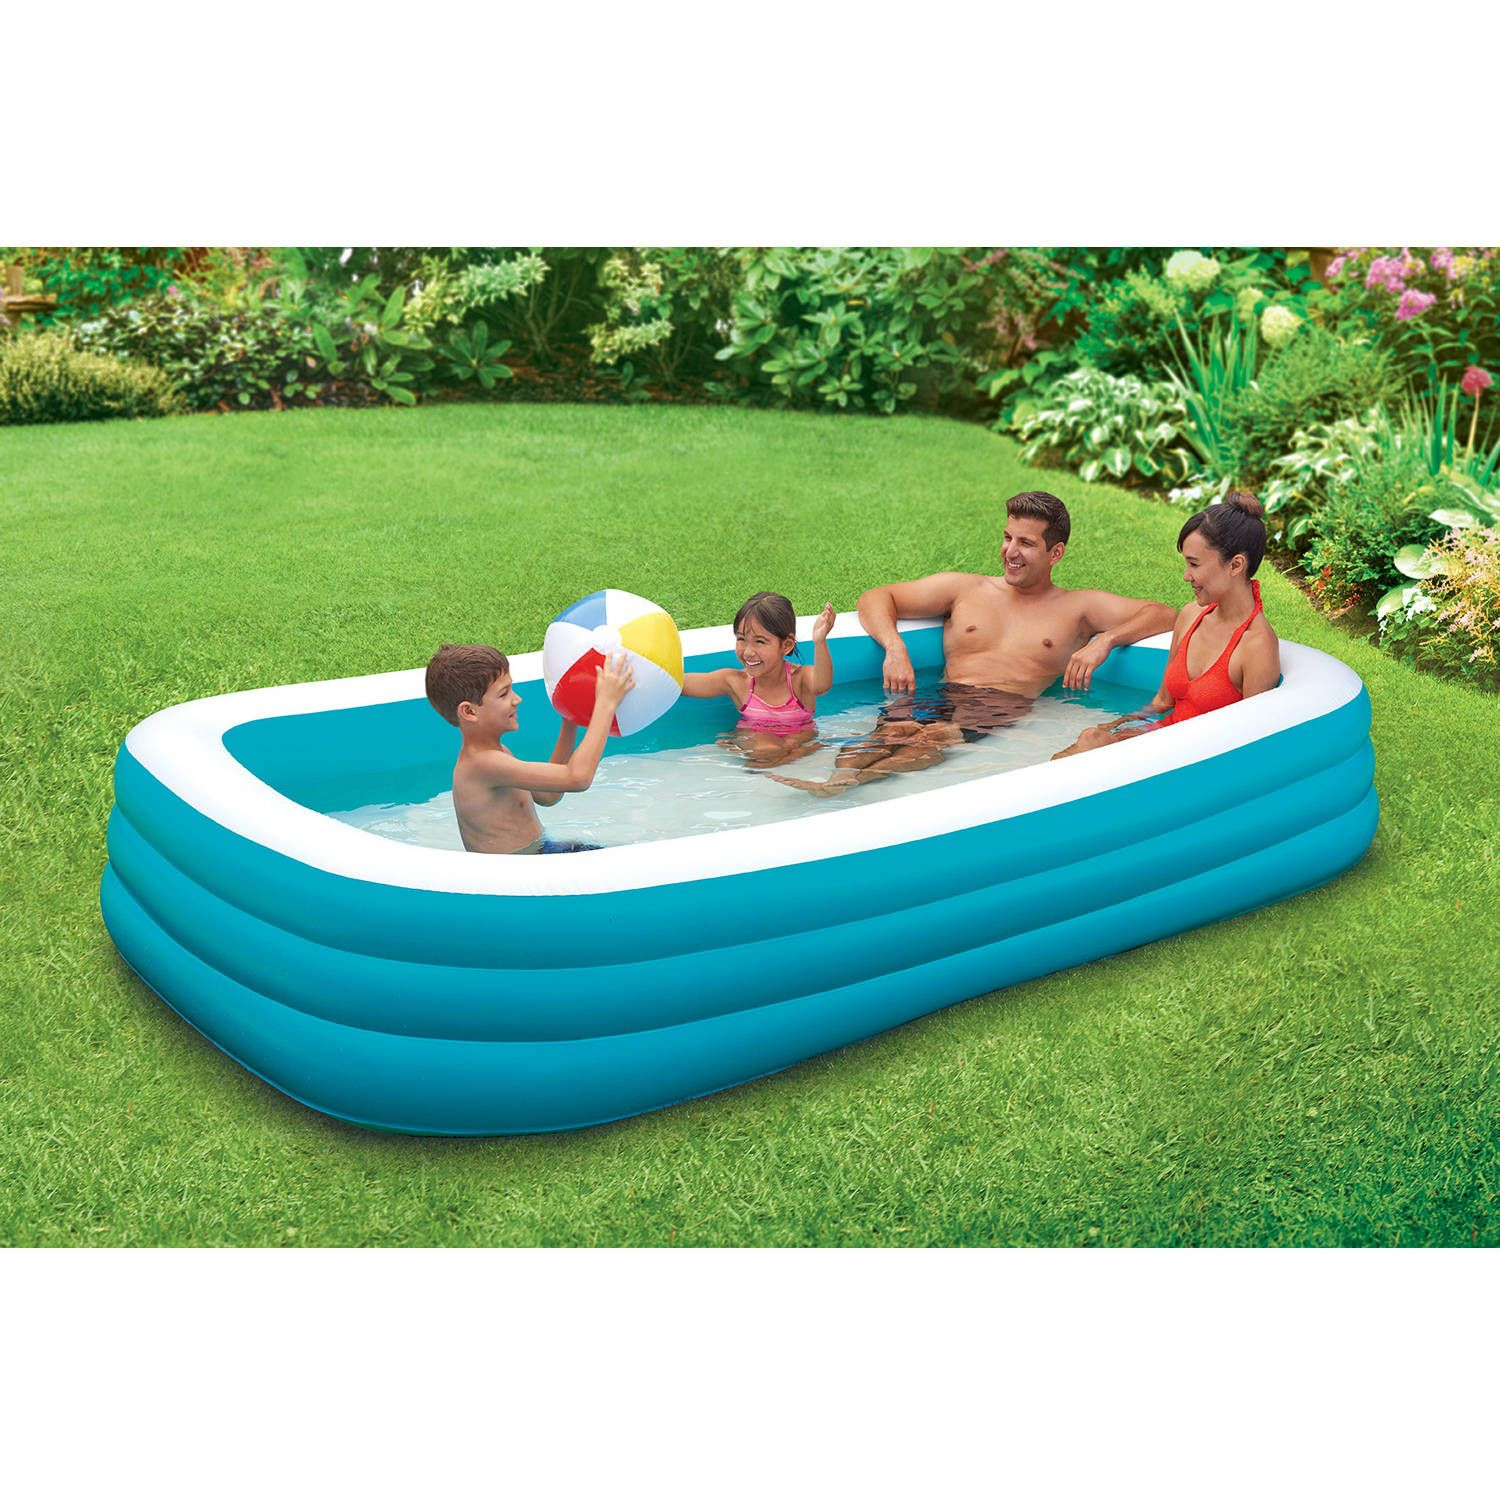 Walmart Play Day 120 Deluxe Family Pool Only 24 45 Family